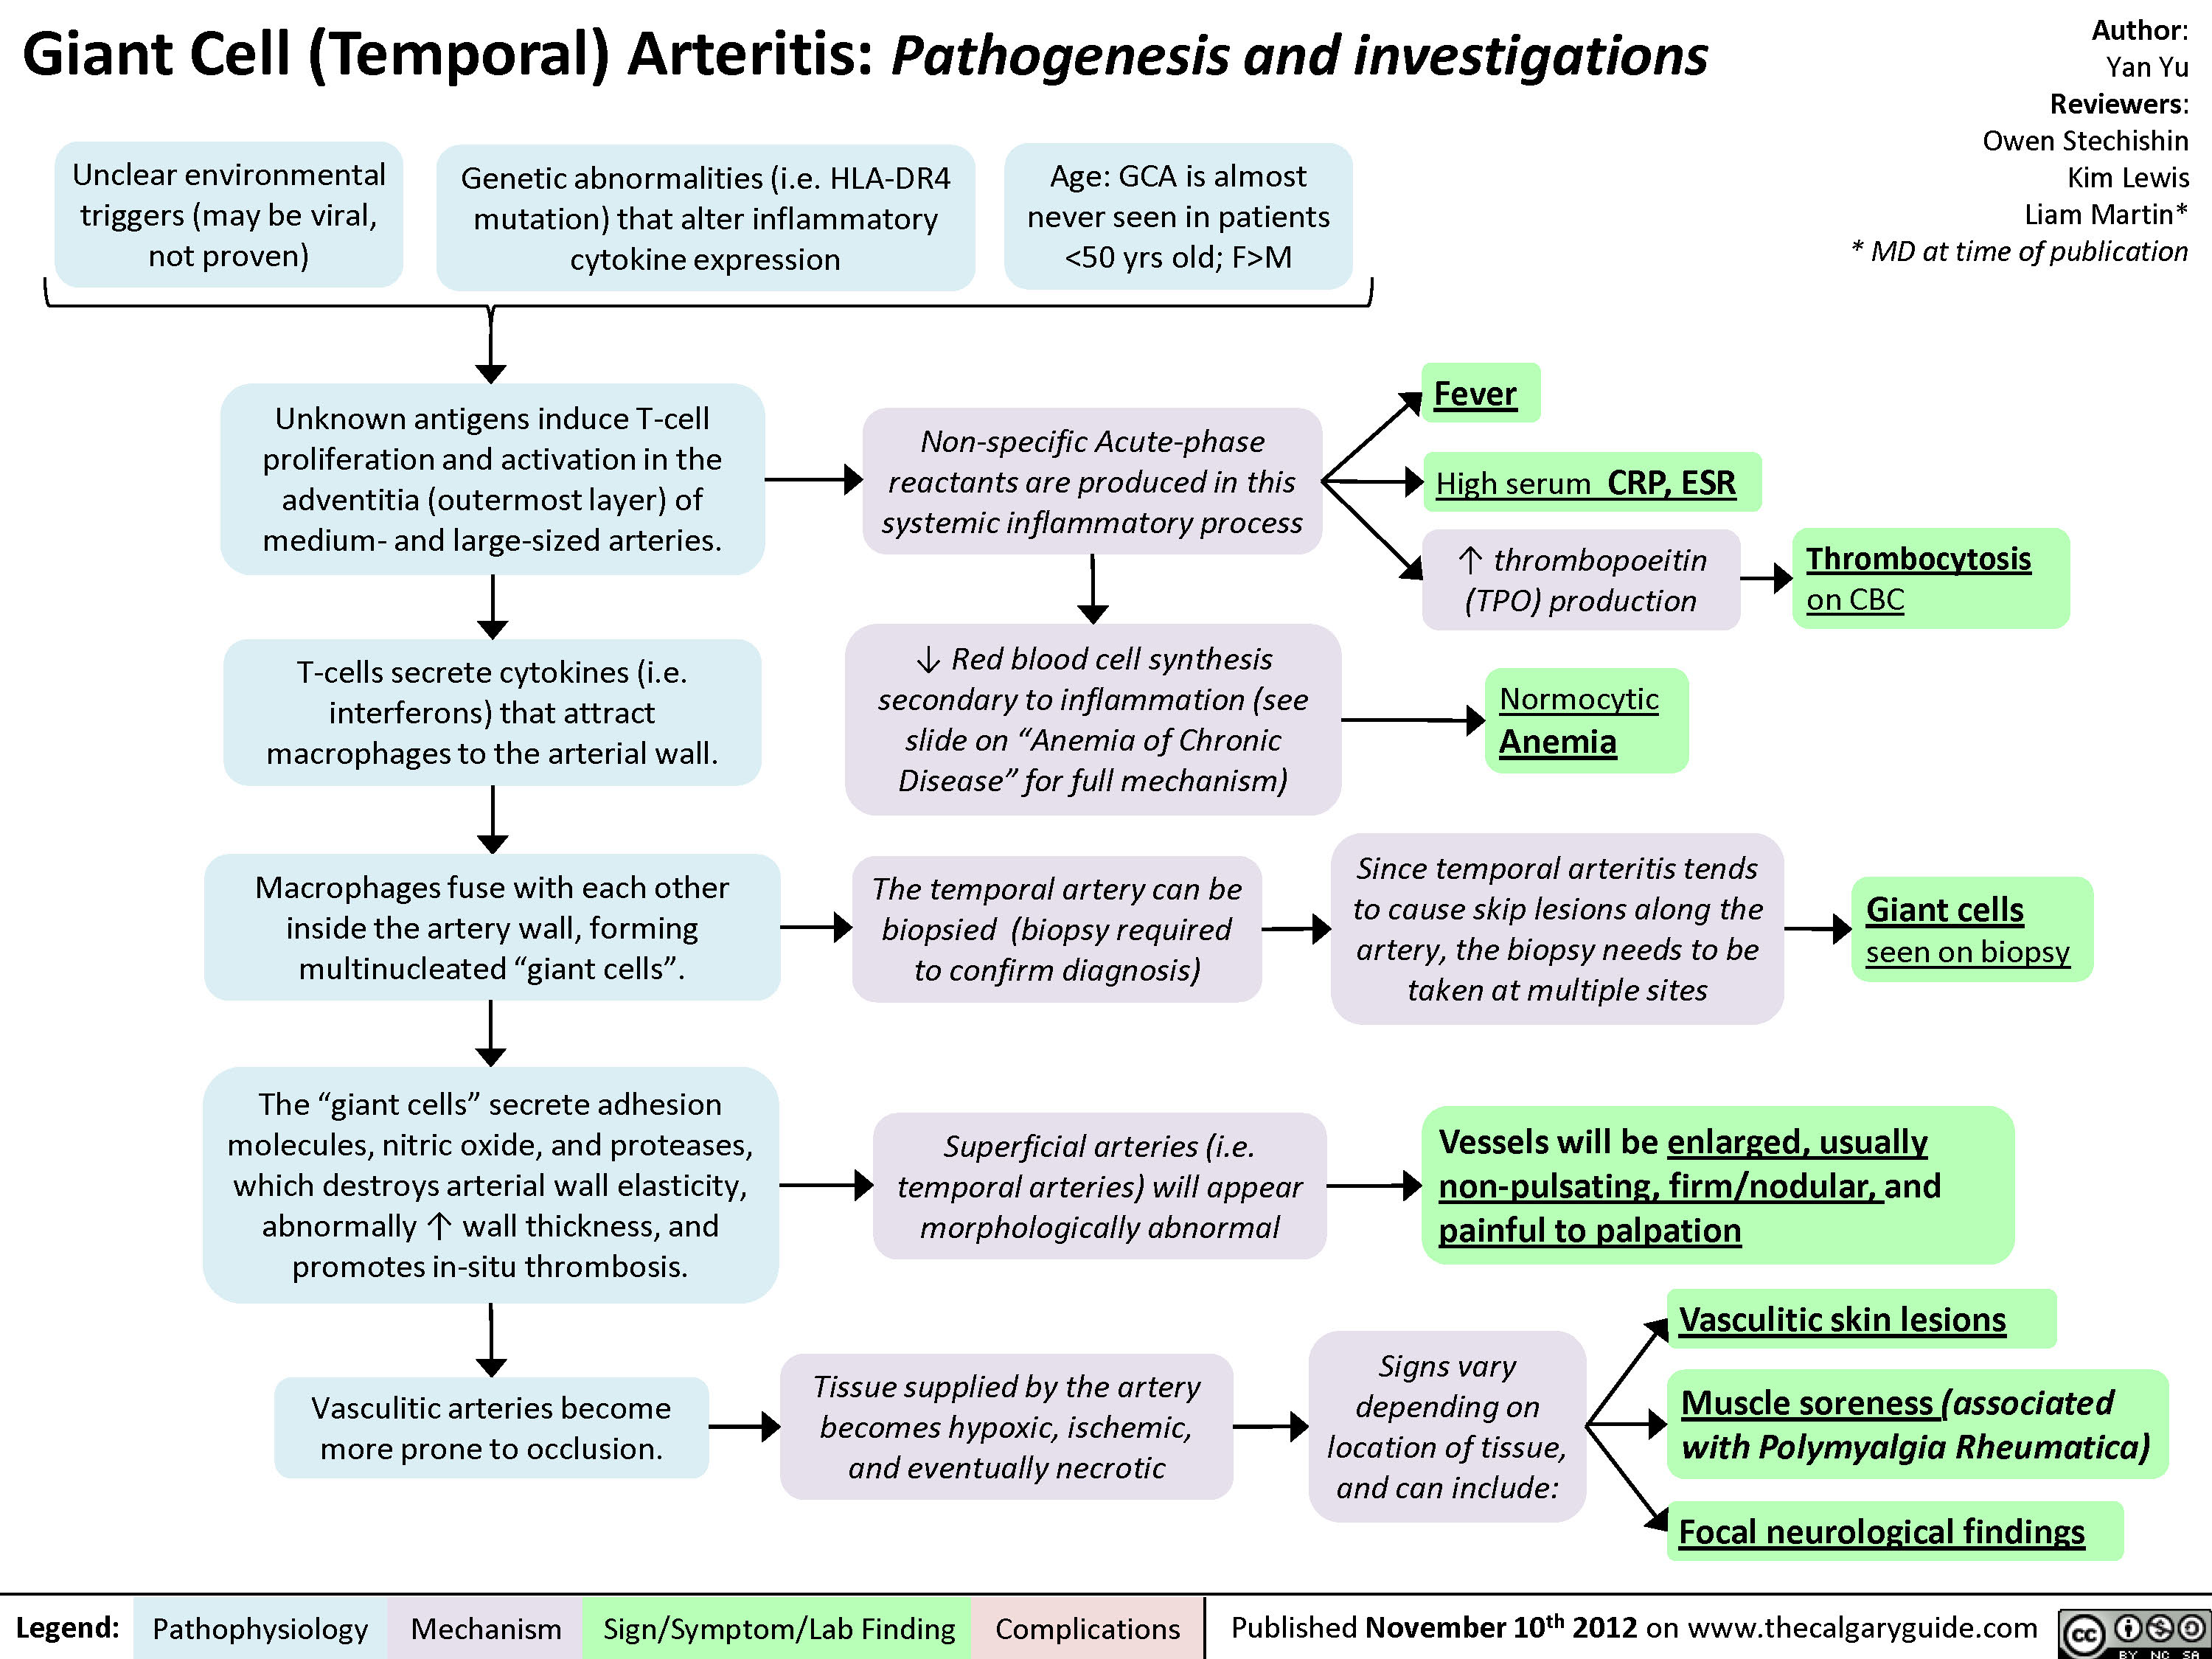 Giant Cell (Temporal) Arteritis: Pathogenesis and investigations